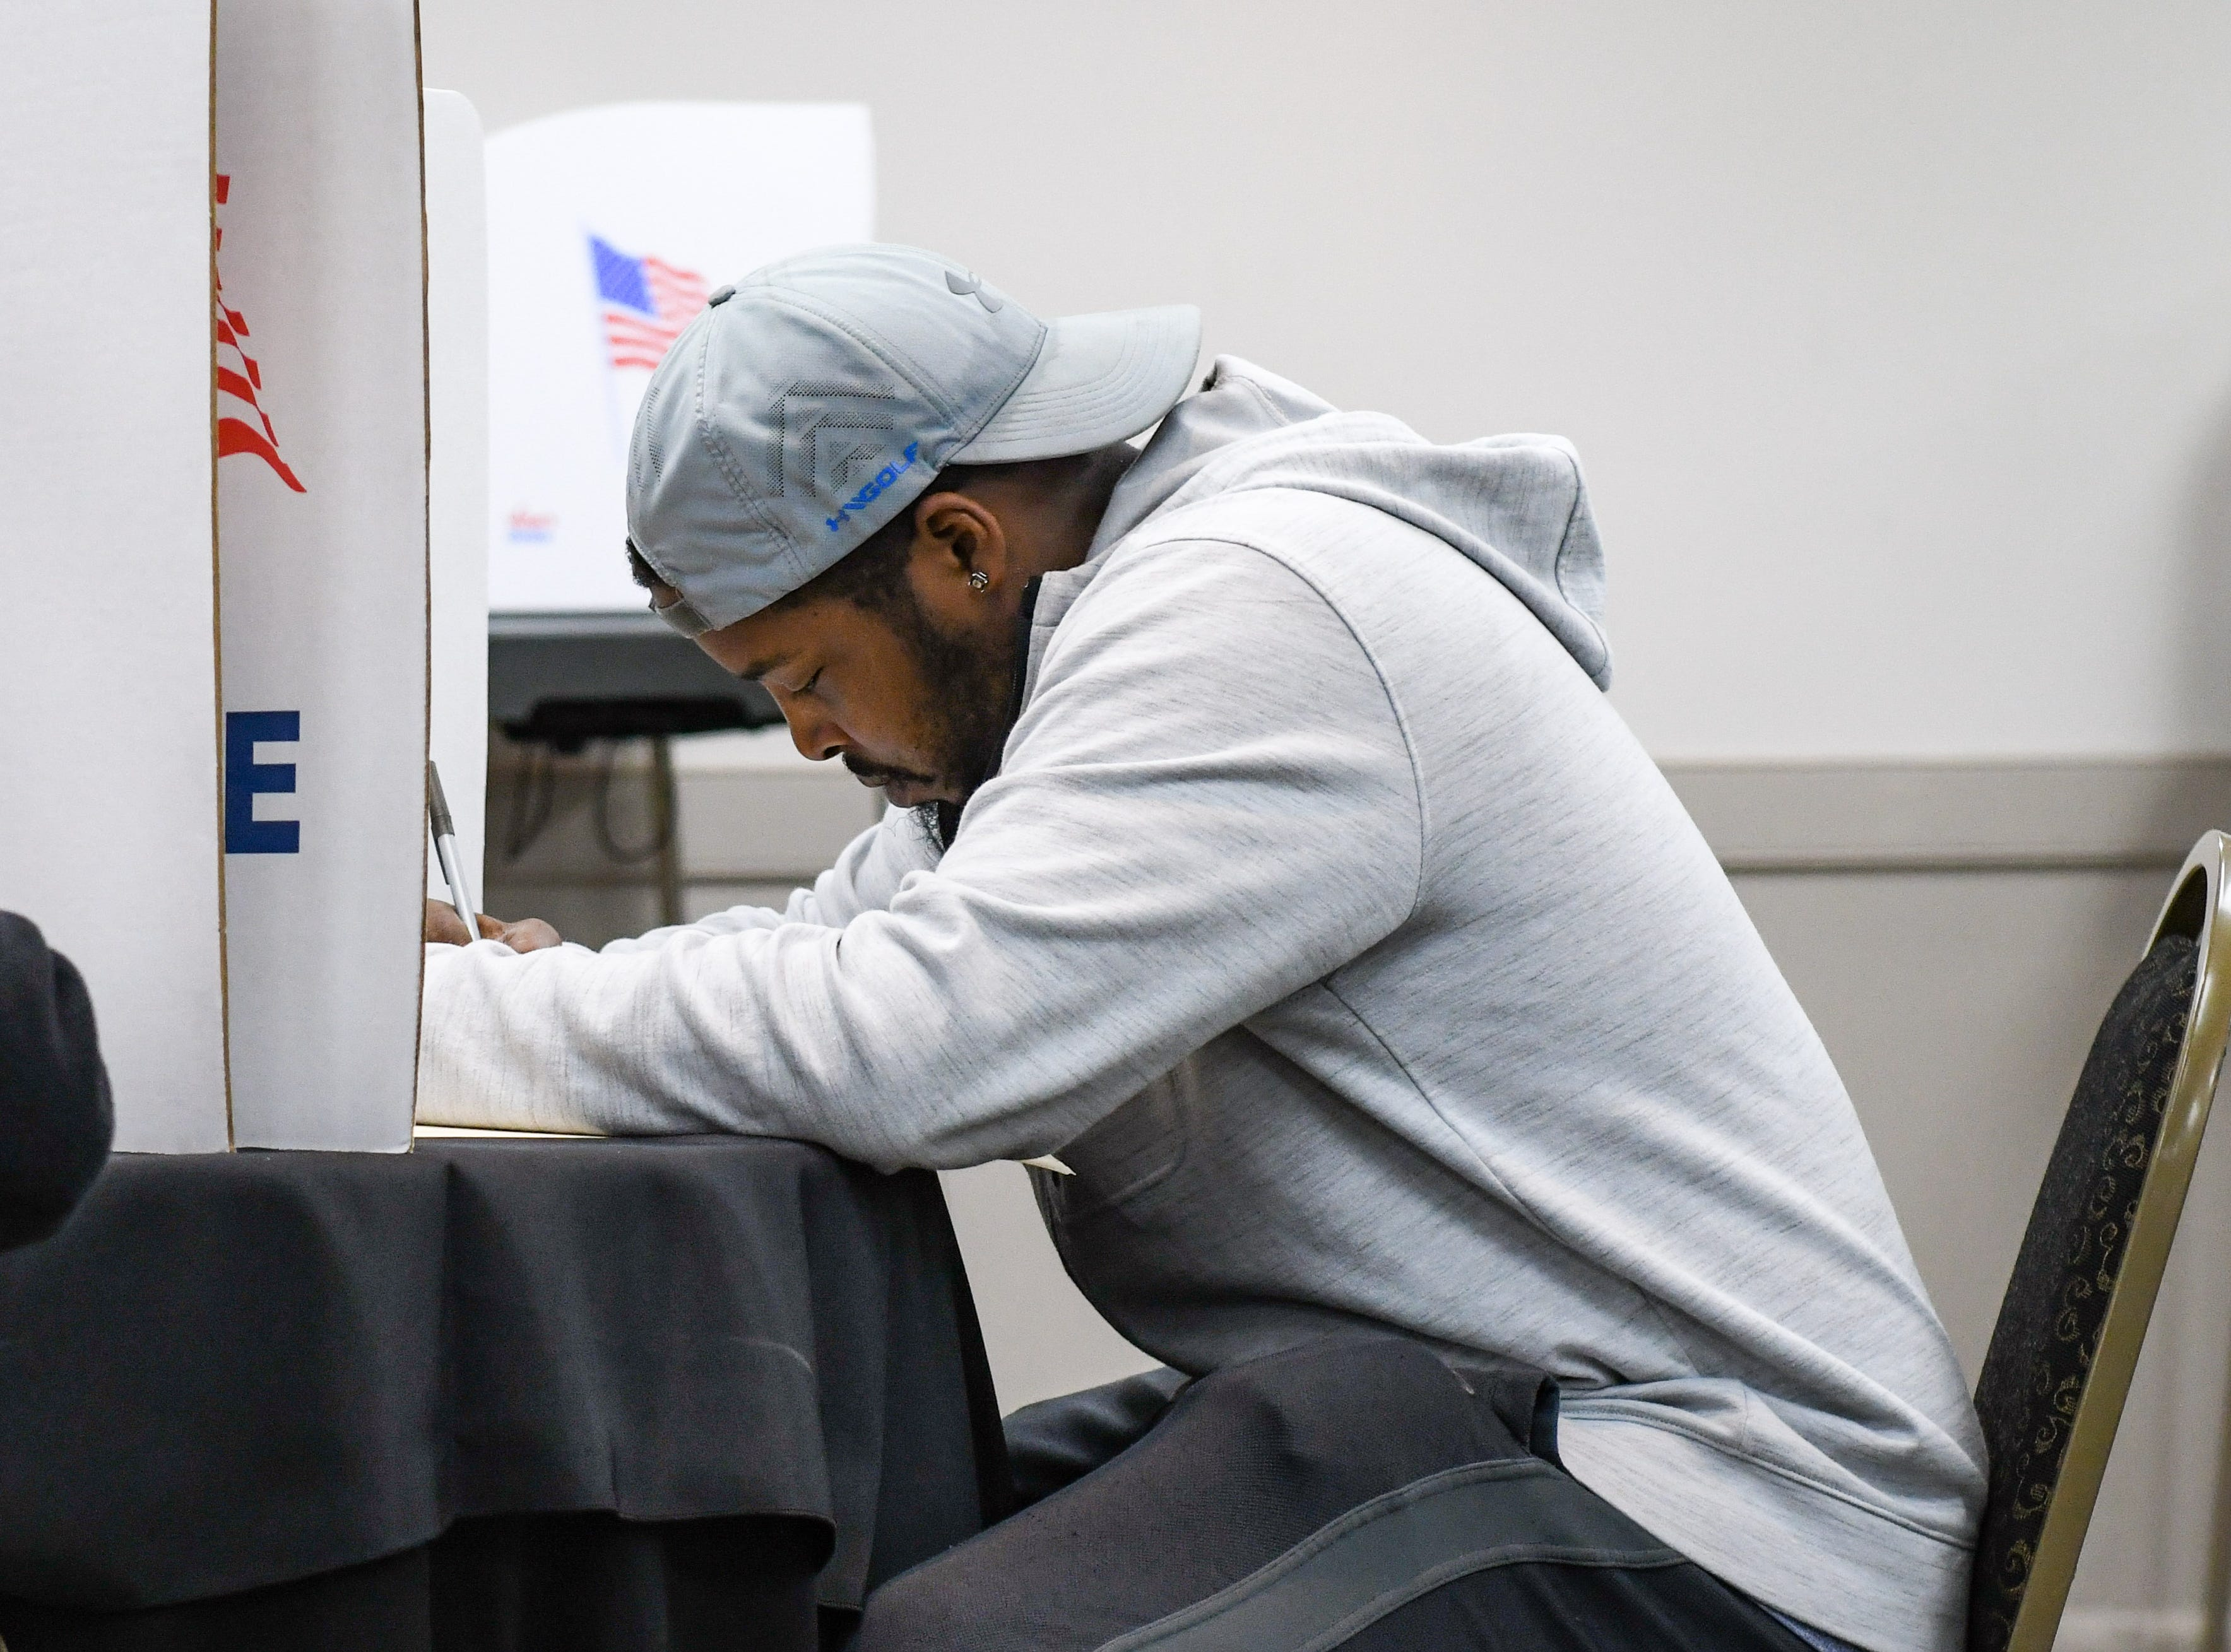 Marquis Waters (right) votes in the midterm election at the Wicomico Civic Center on Tuesday, Nov 6, 2018.